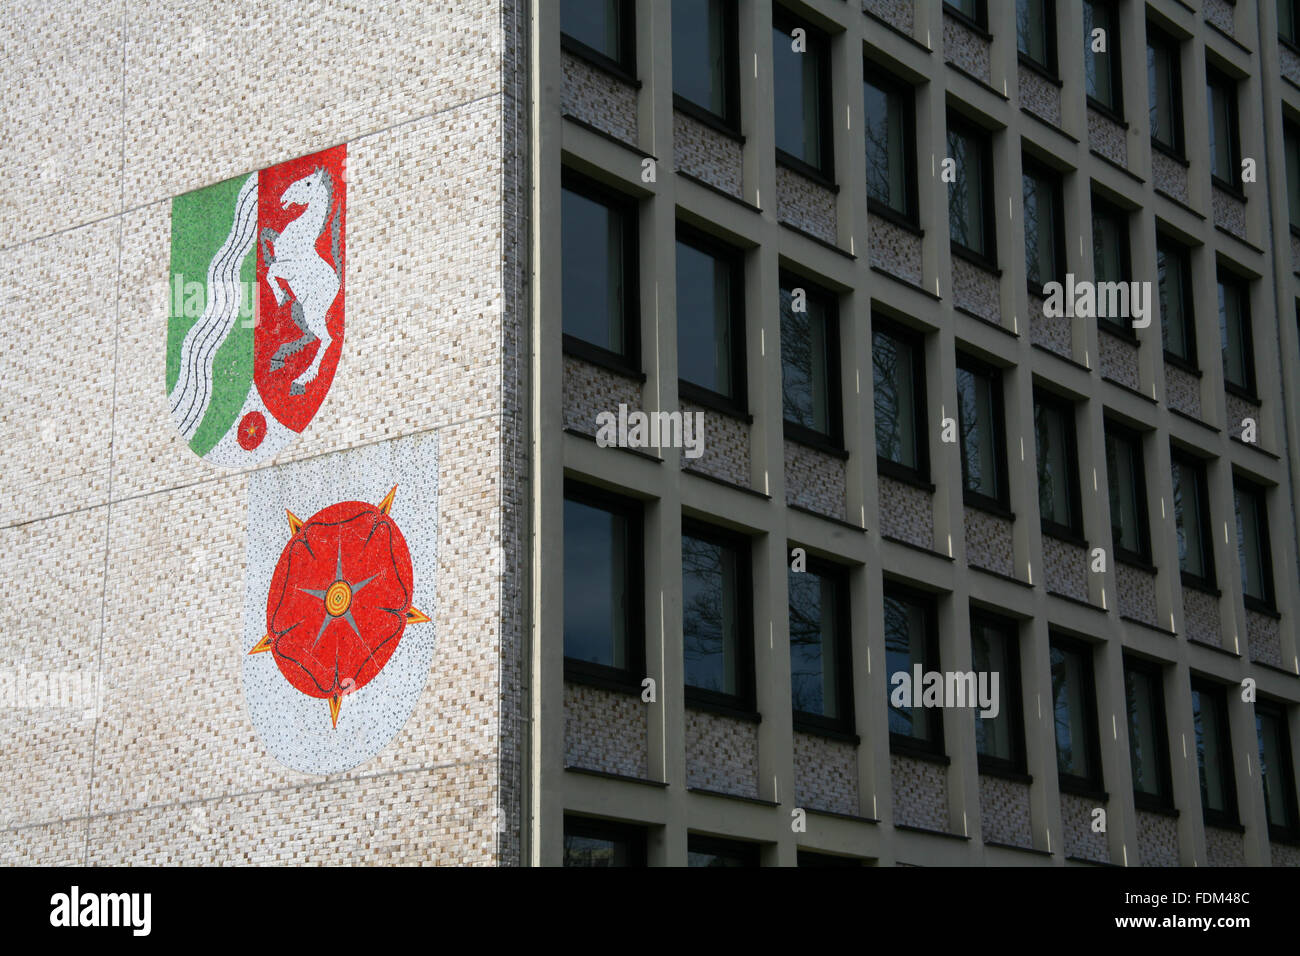 tax office,detmold,north rhine westphalia,coat of arms Stock Photo